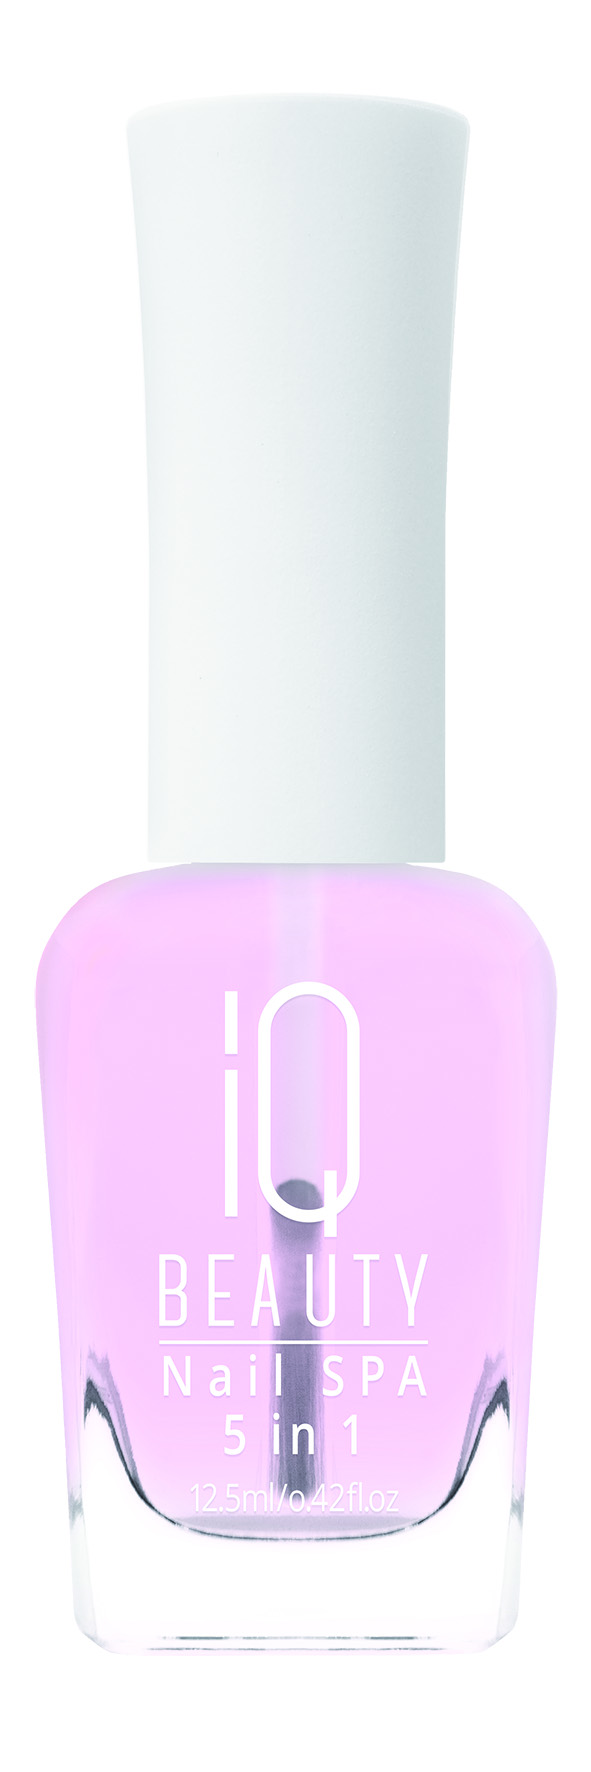 IQ BEAUTY ��� ���� ��� ������ � �������� 5 �1 /Nail SPA 5 in 1, 12,5��